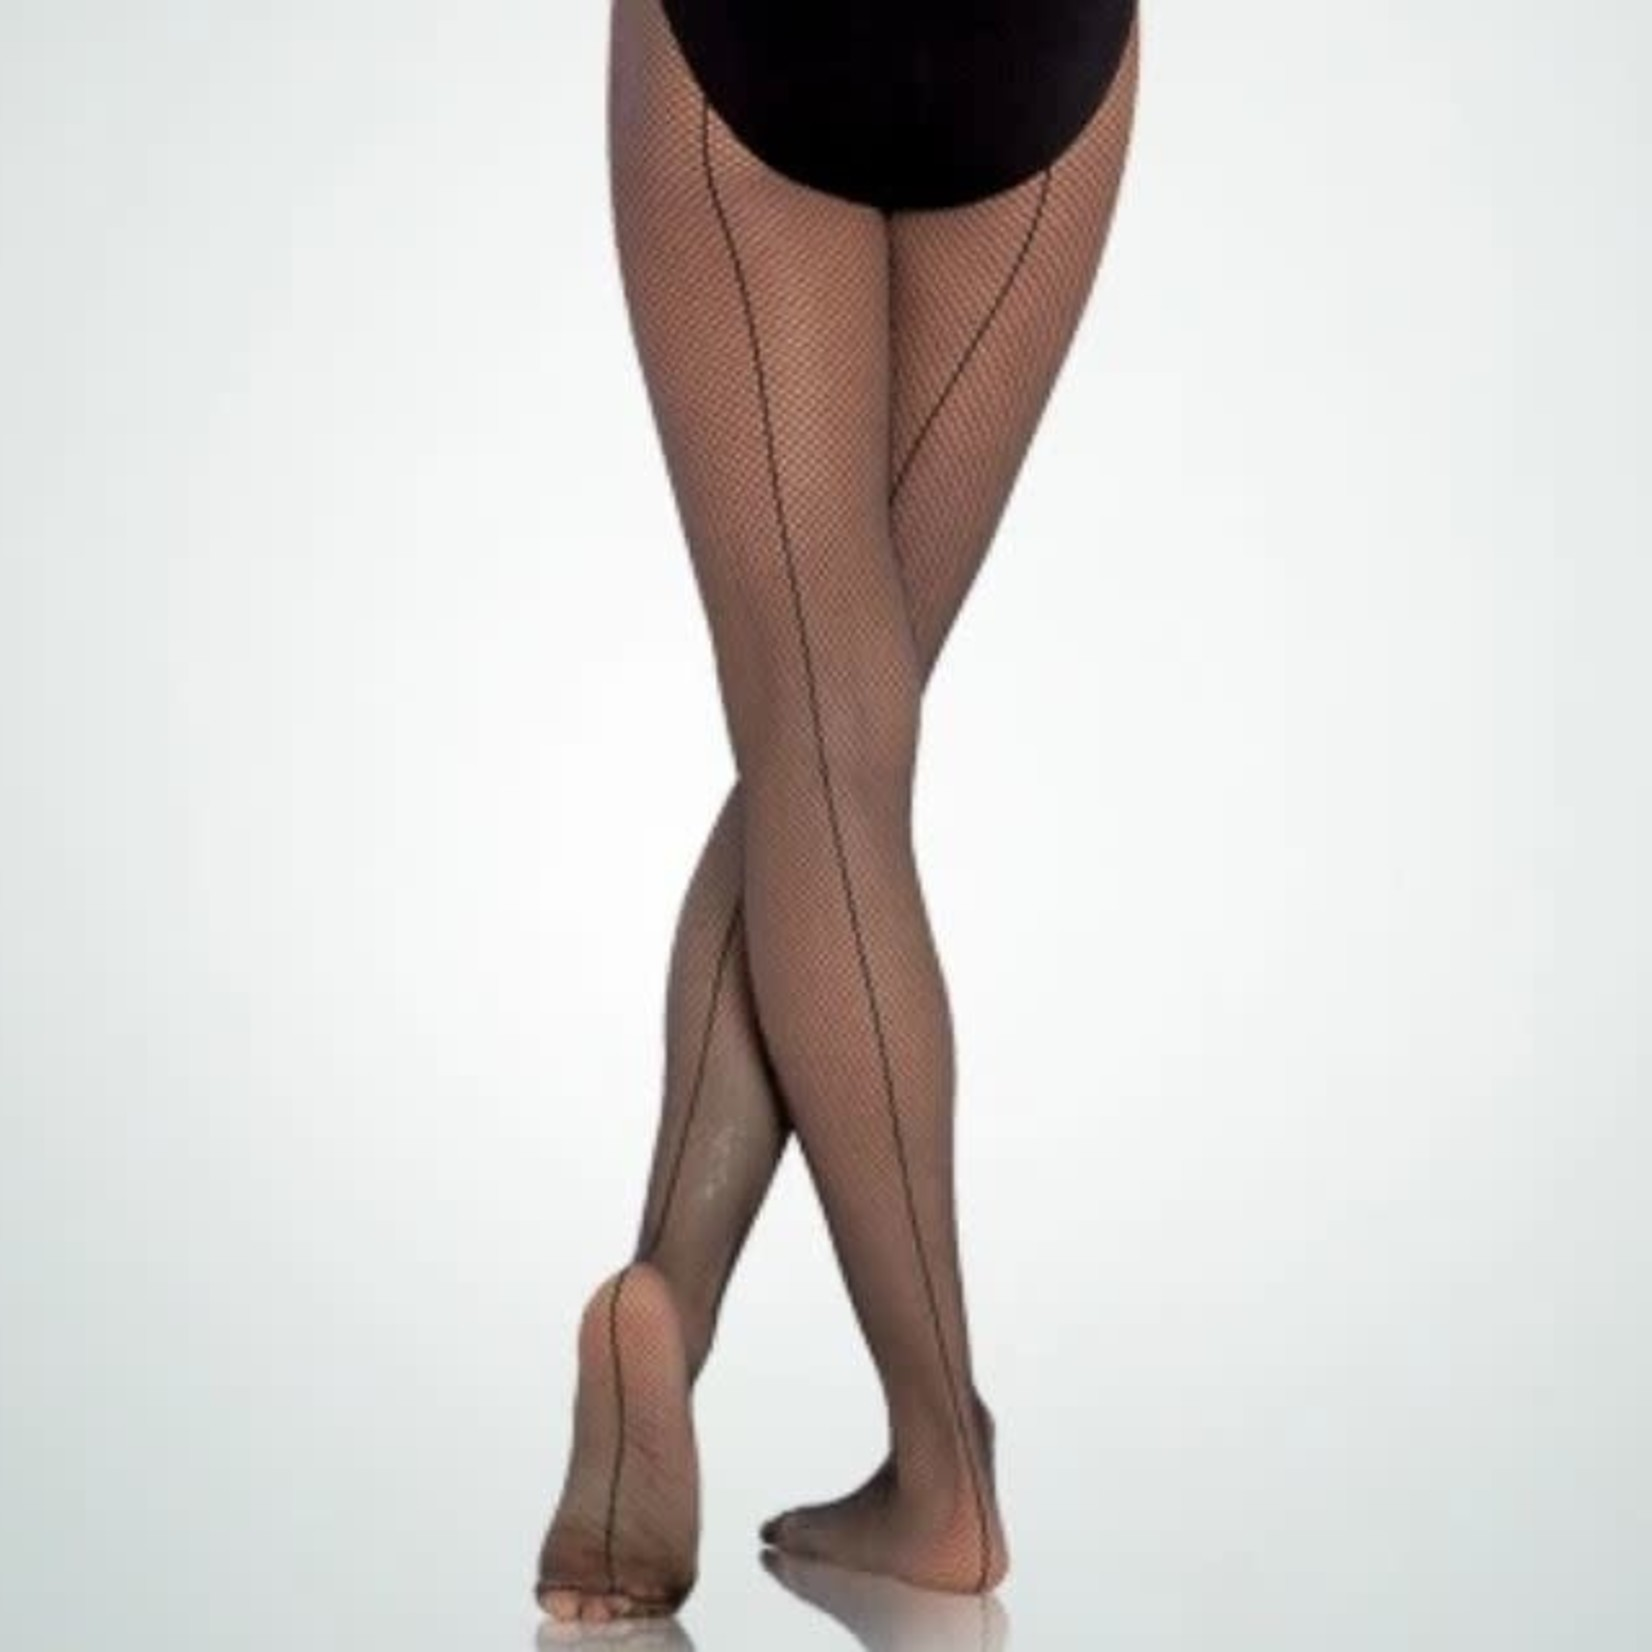 Body Wrappers Body Wrappers A62 Seamed Fishnet Tights